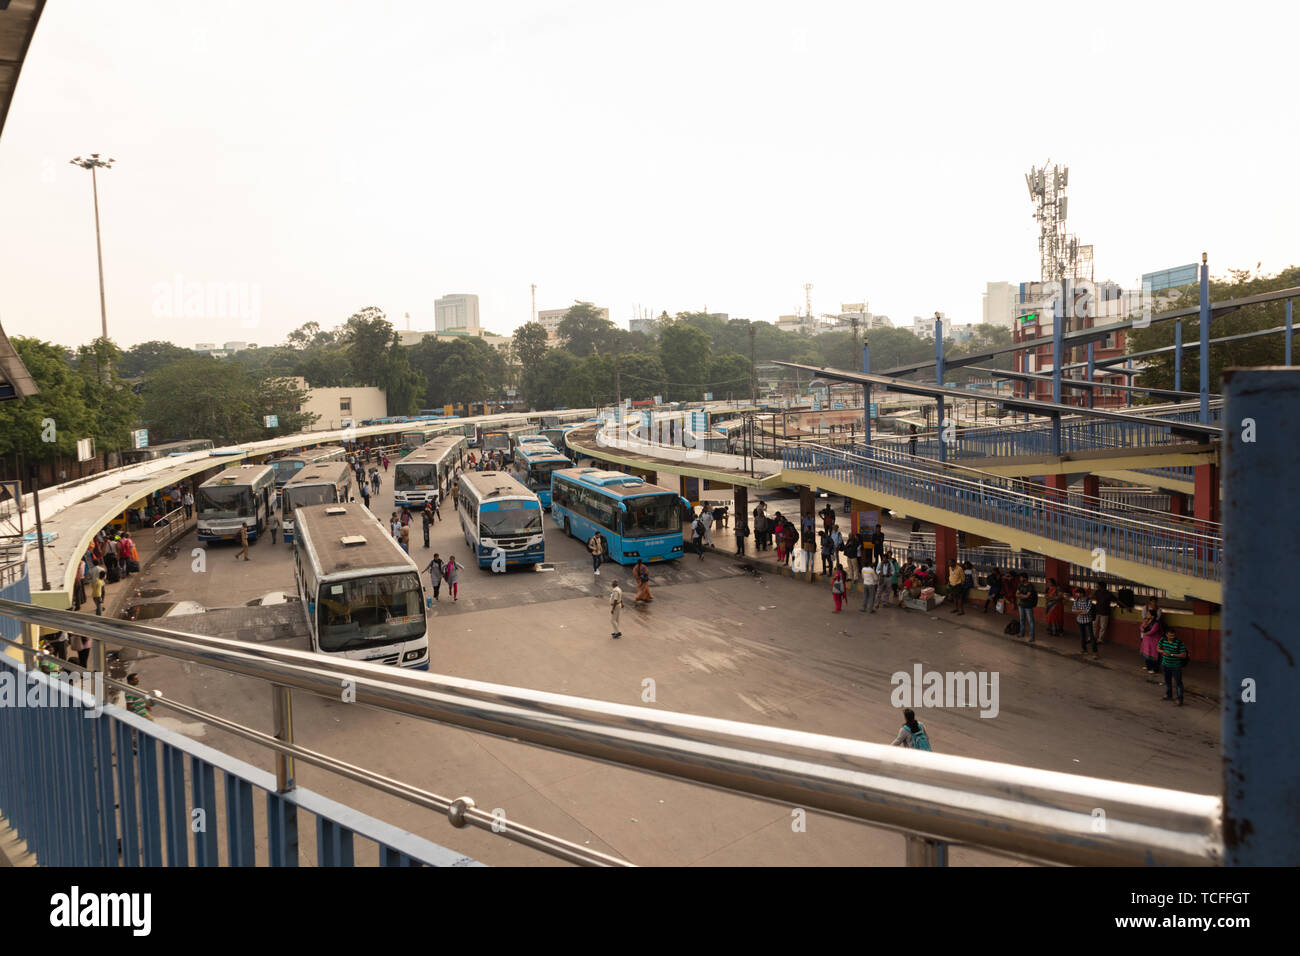 BANGALORE INDIA June 3, 2019:Buses in the Kempegowda Bus Station known as Majestic during morning time traffic congestion - Stock Image